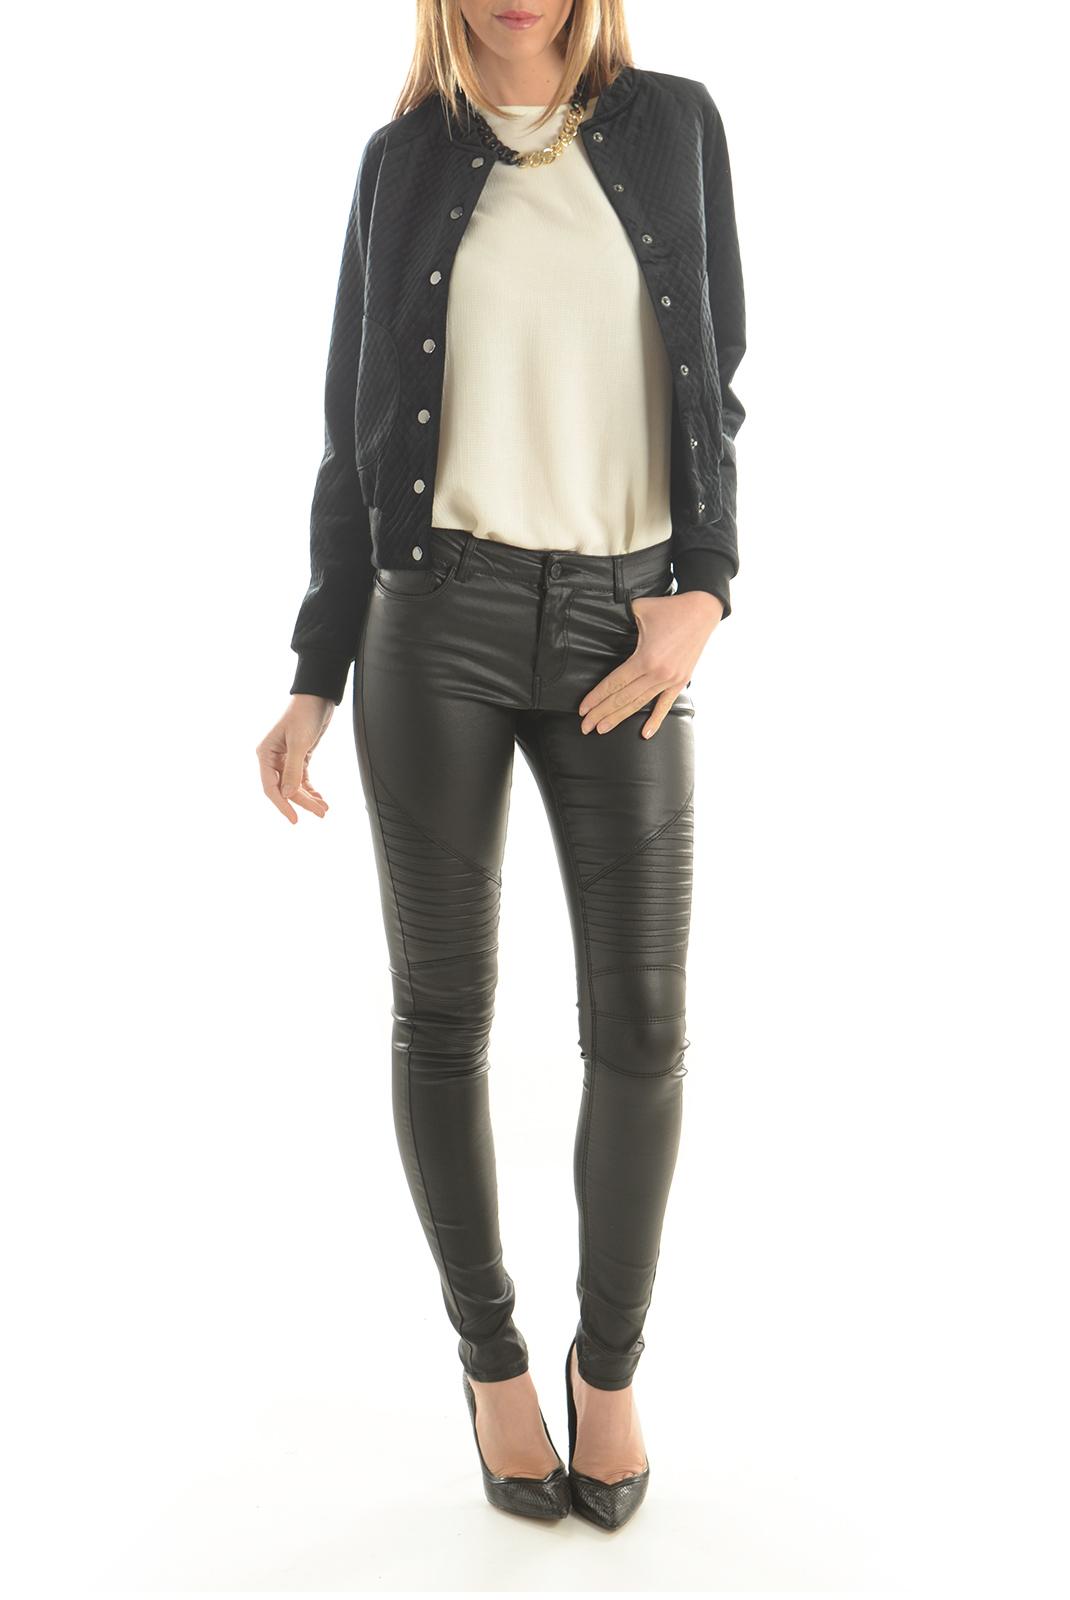 Jeans   Noisy May LUCY NW COATED BIKER JEANS NOOS BLACK